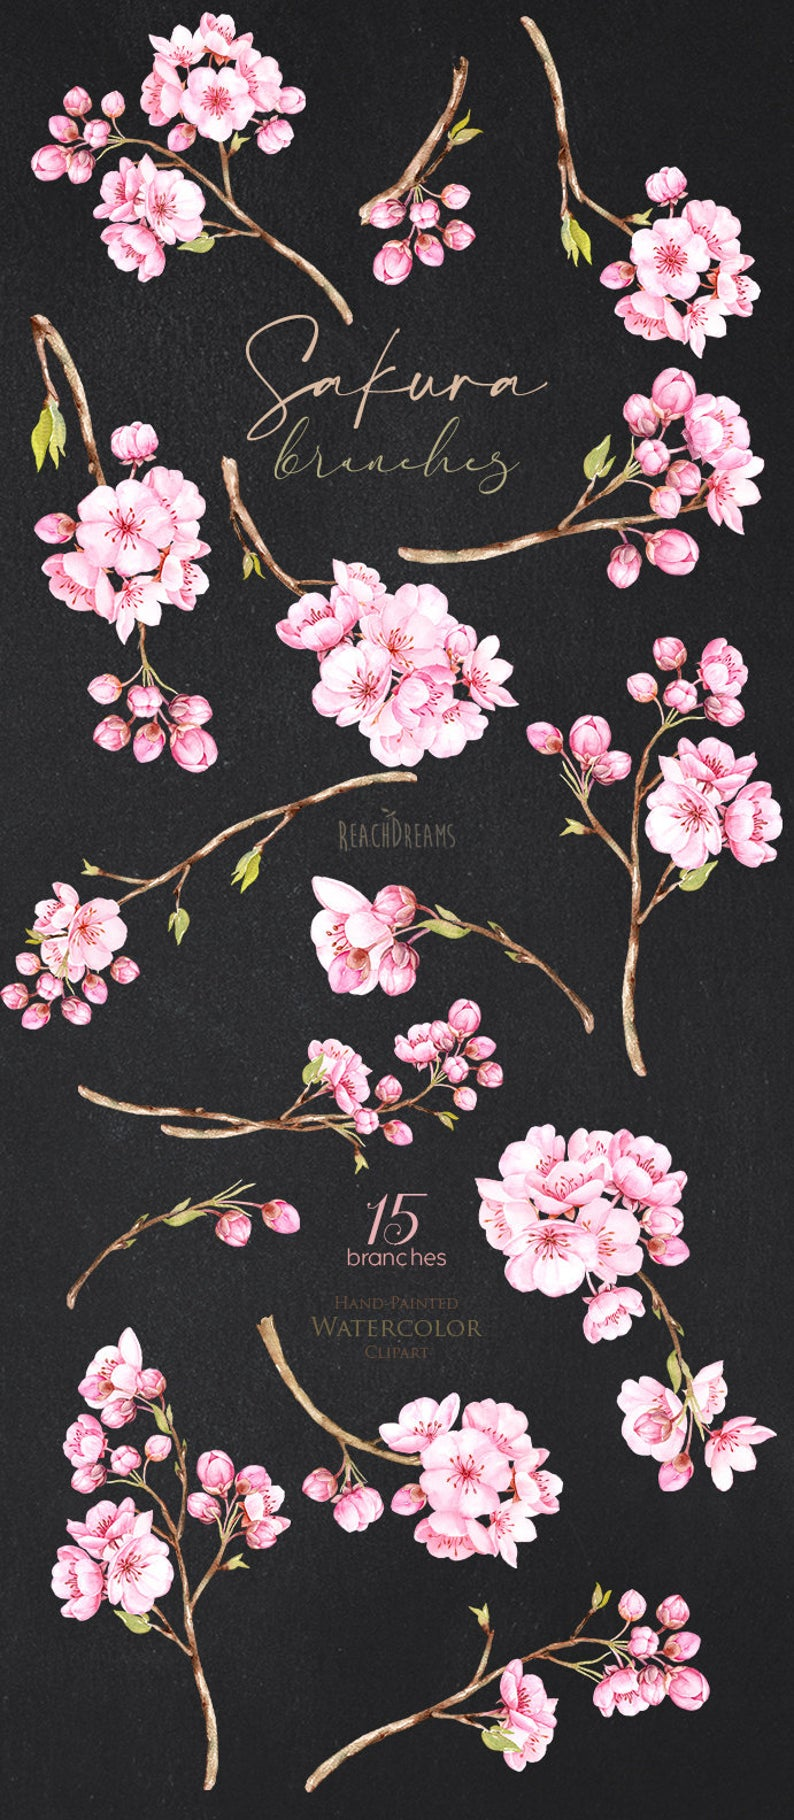 Sakura Branches Watercolor Floral Clipart Cherry Blossom Etsy In 2020 Floral Watercolor Cherry Blossom Art Japanese Letters Tattoo